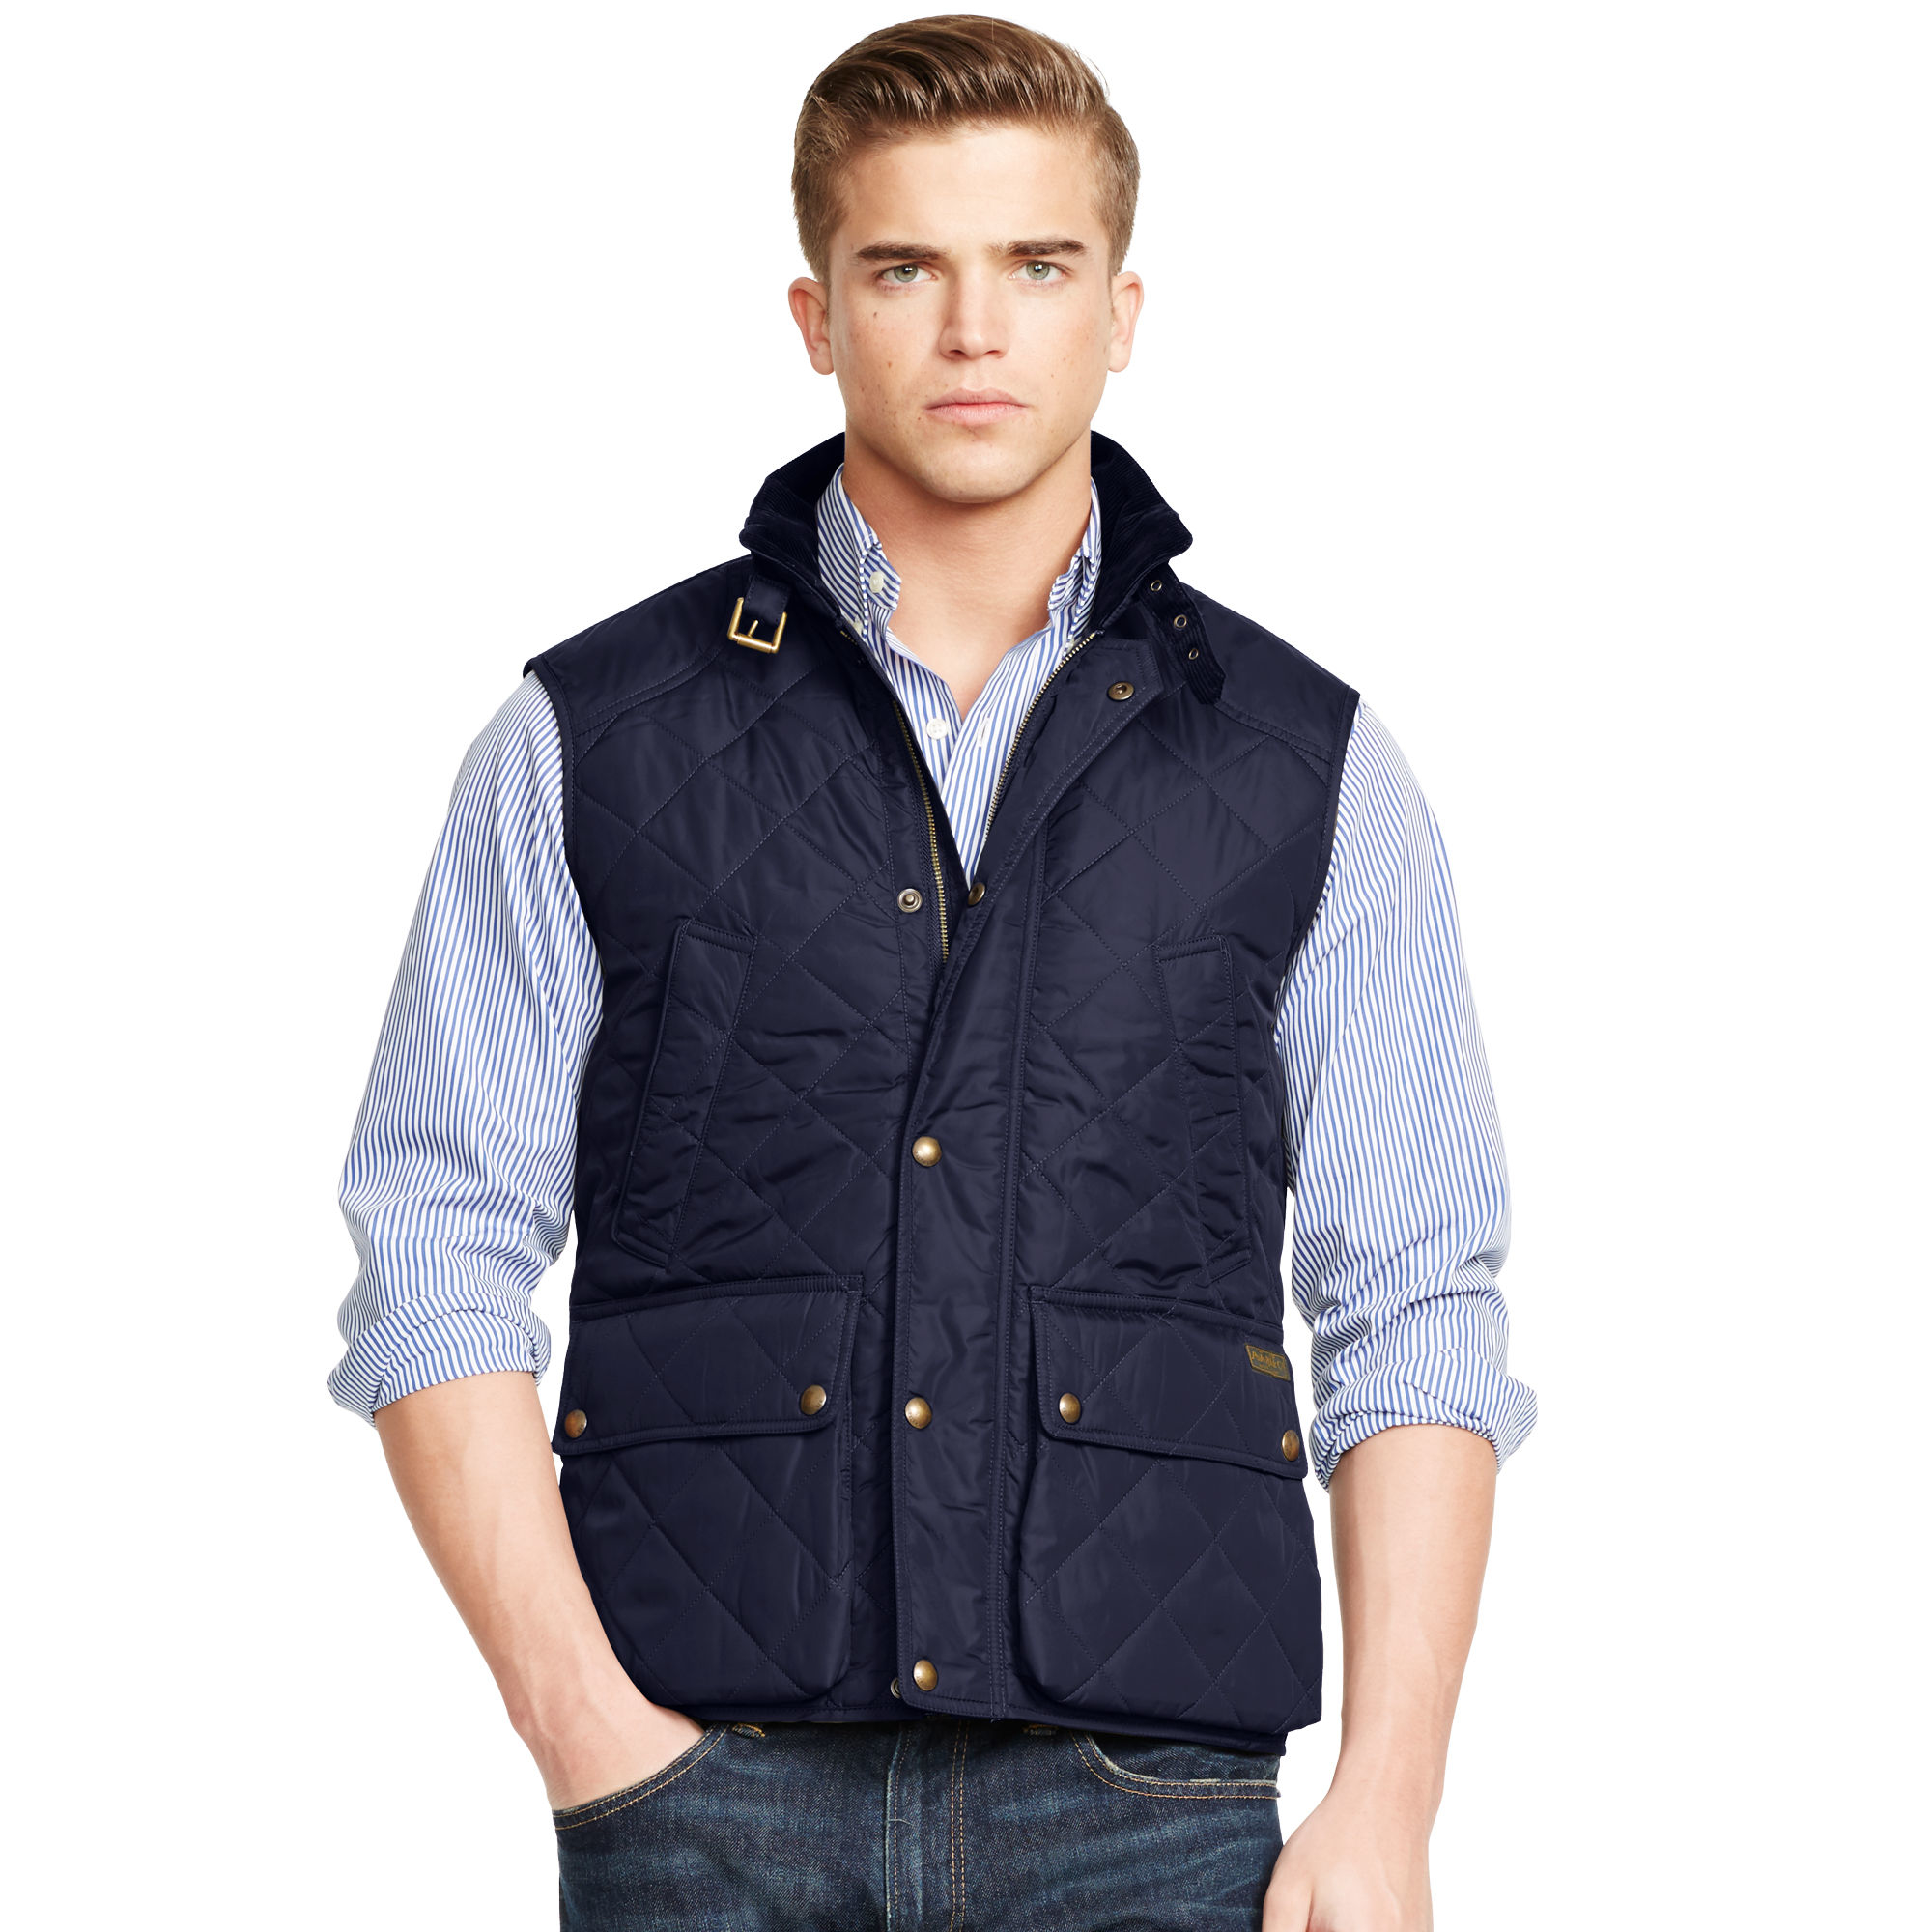 deals sharp product ralph jd cheapest plu uk list jacket best a te polo resmode quilt top quilted mens lauren padded prices on